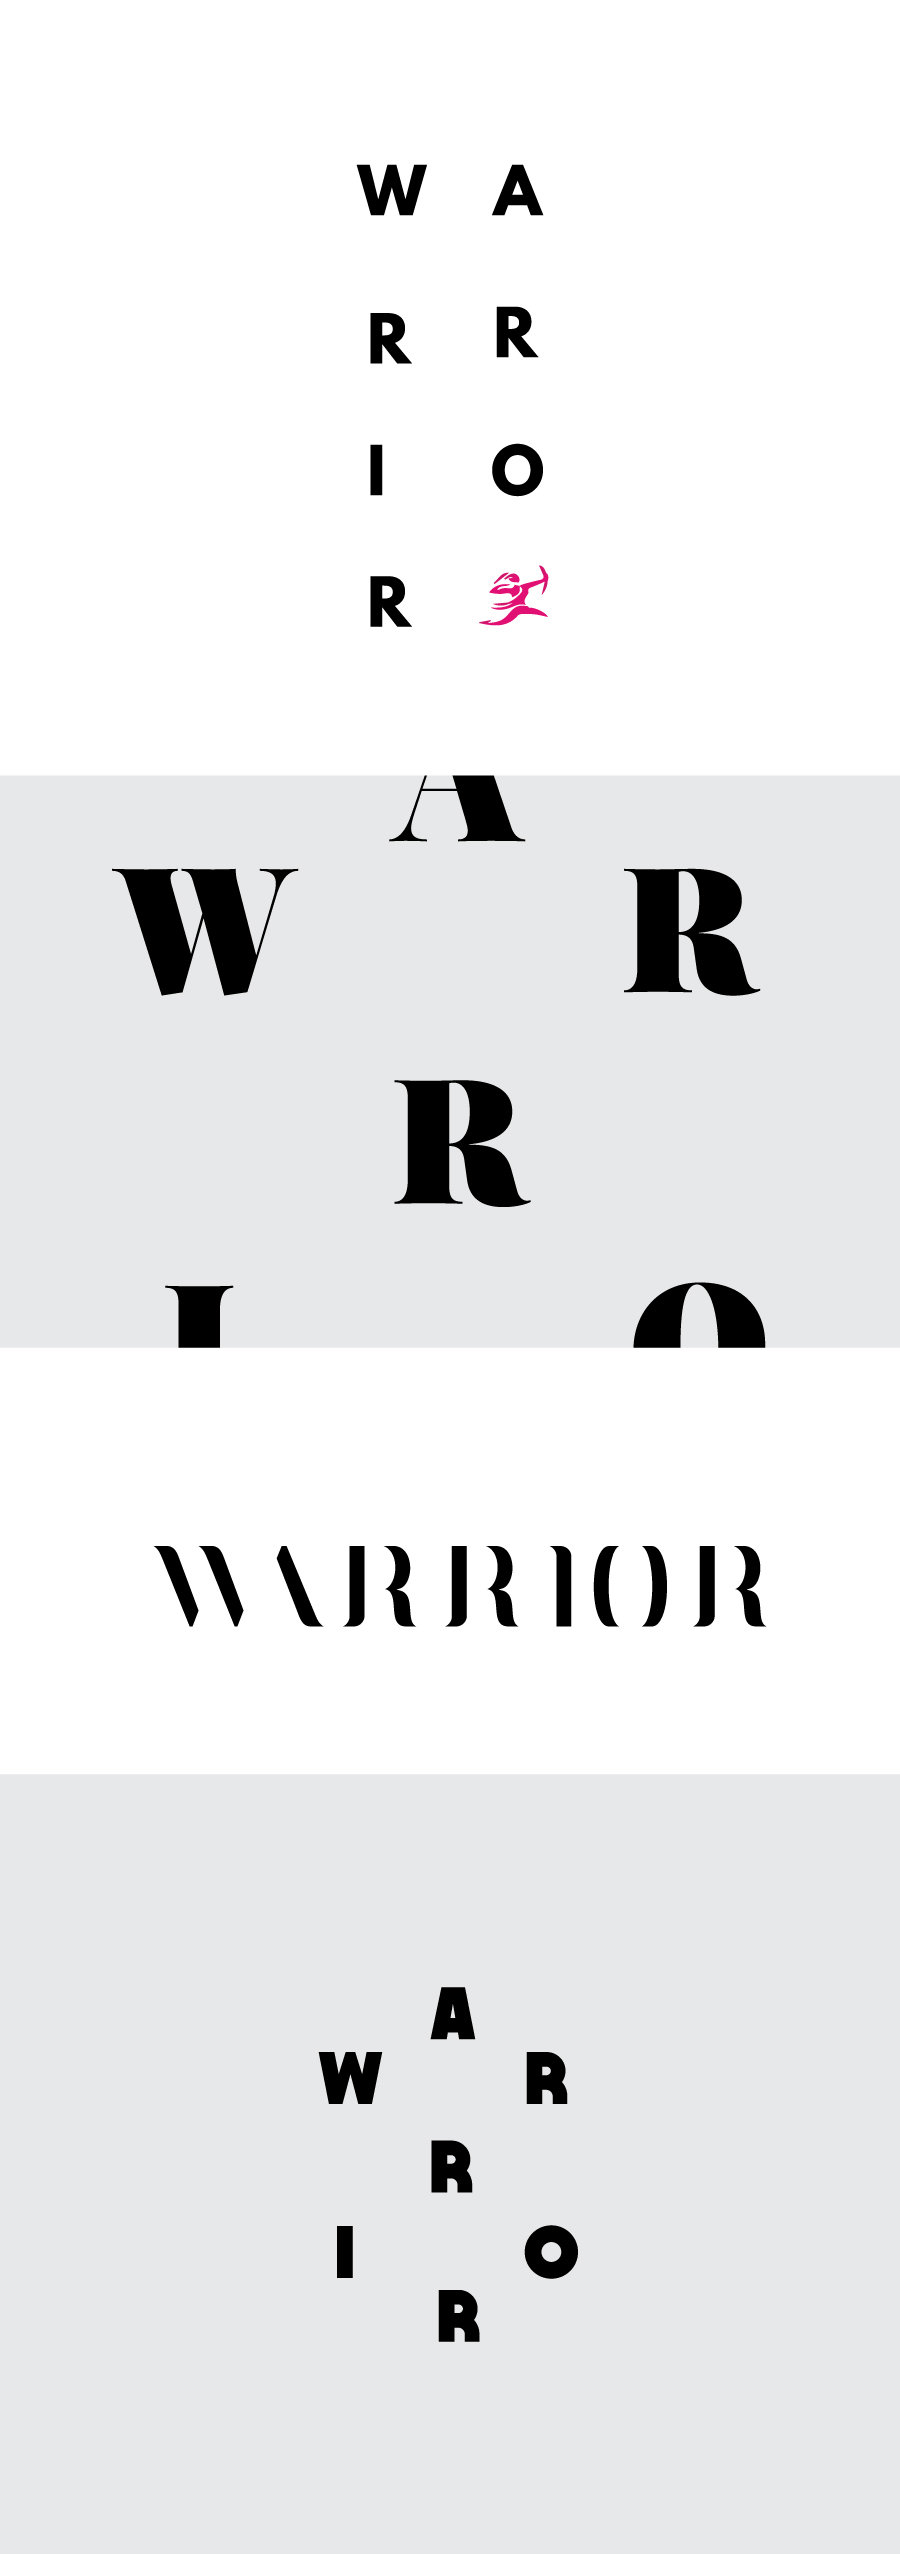 "Custom Type ""Warrior"" Concepts for the Woman2Warrior 2015 social campaign 